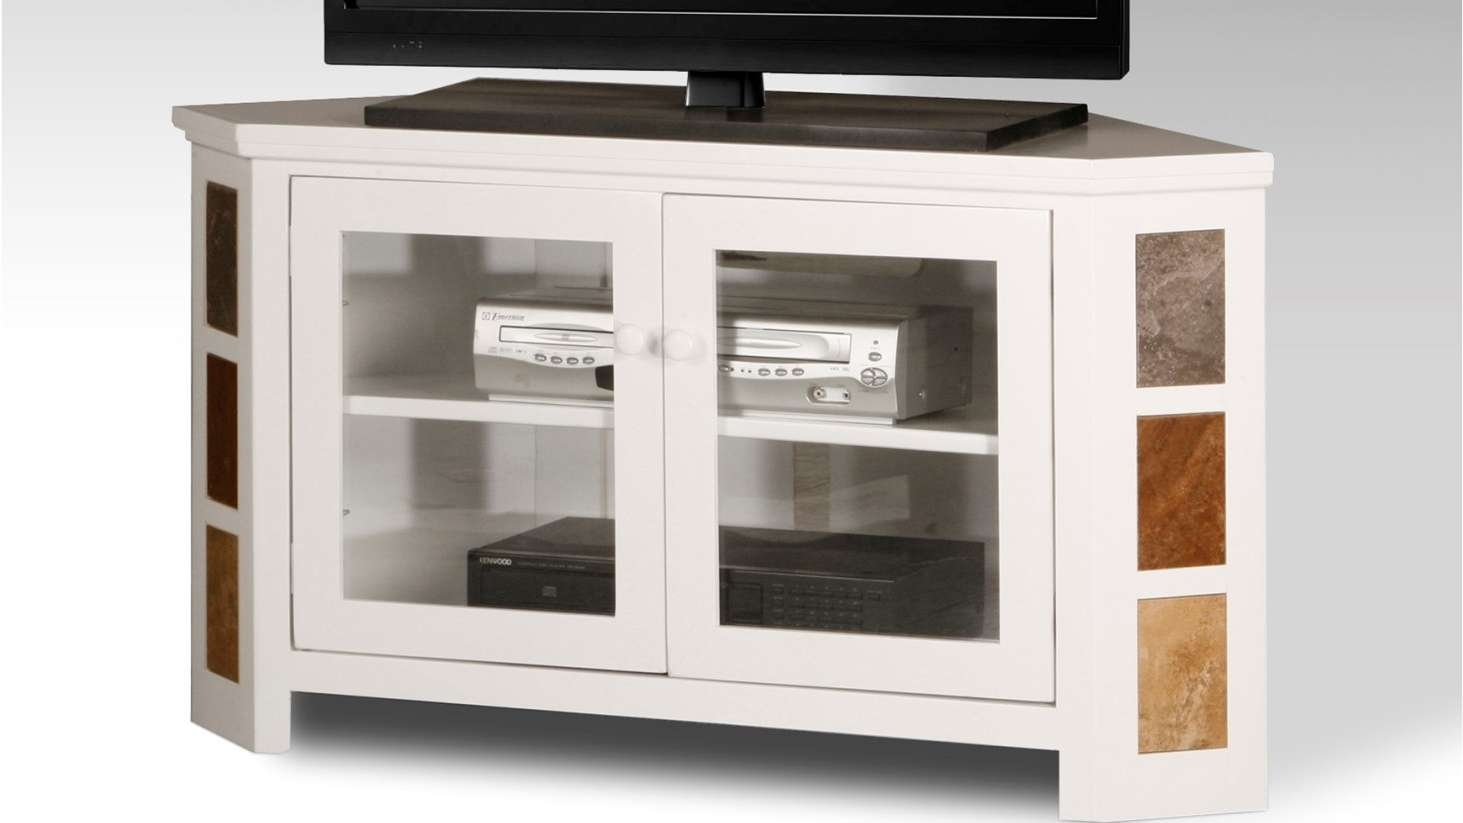 Tv : Amazing Oval White Tv Stands Techlink Ovid White Gloss Oval With Regard To Ovid White Tv Stands (View 10 of 15)